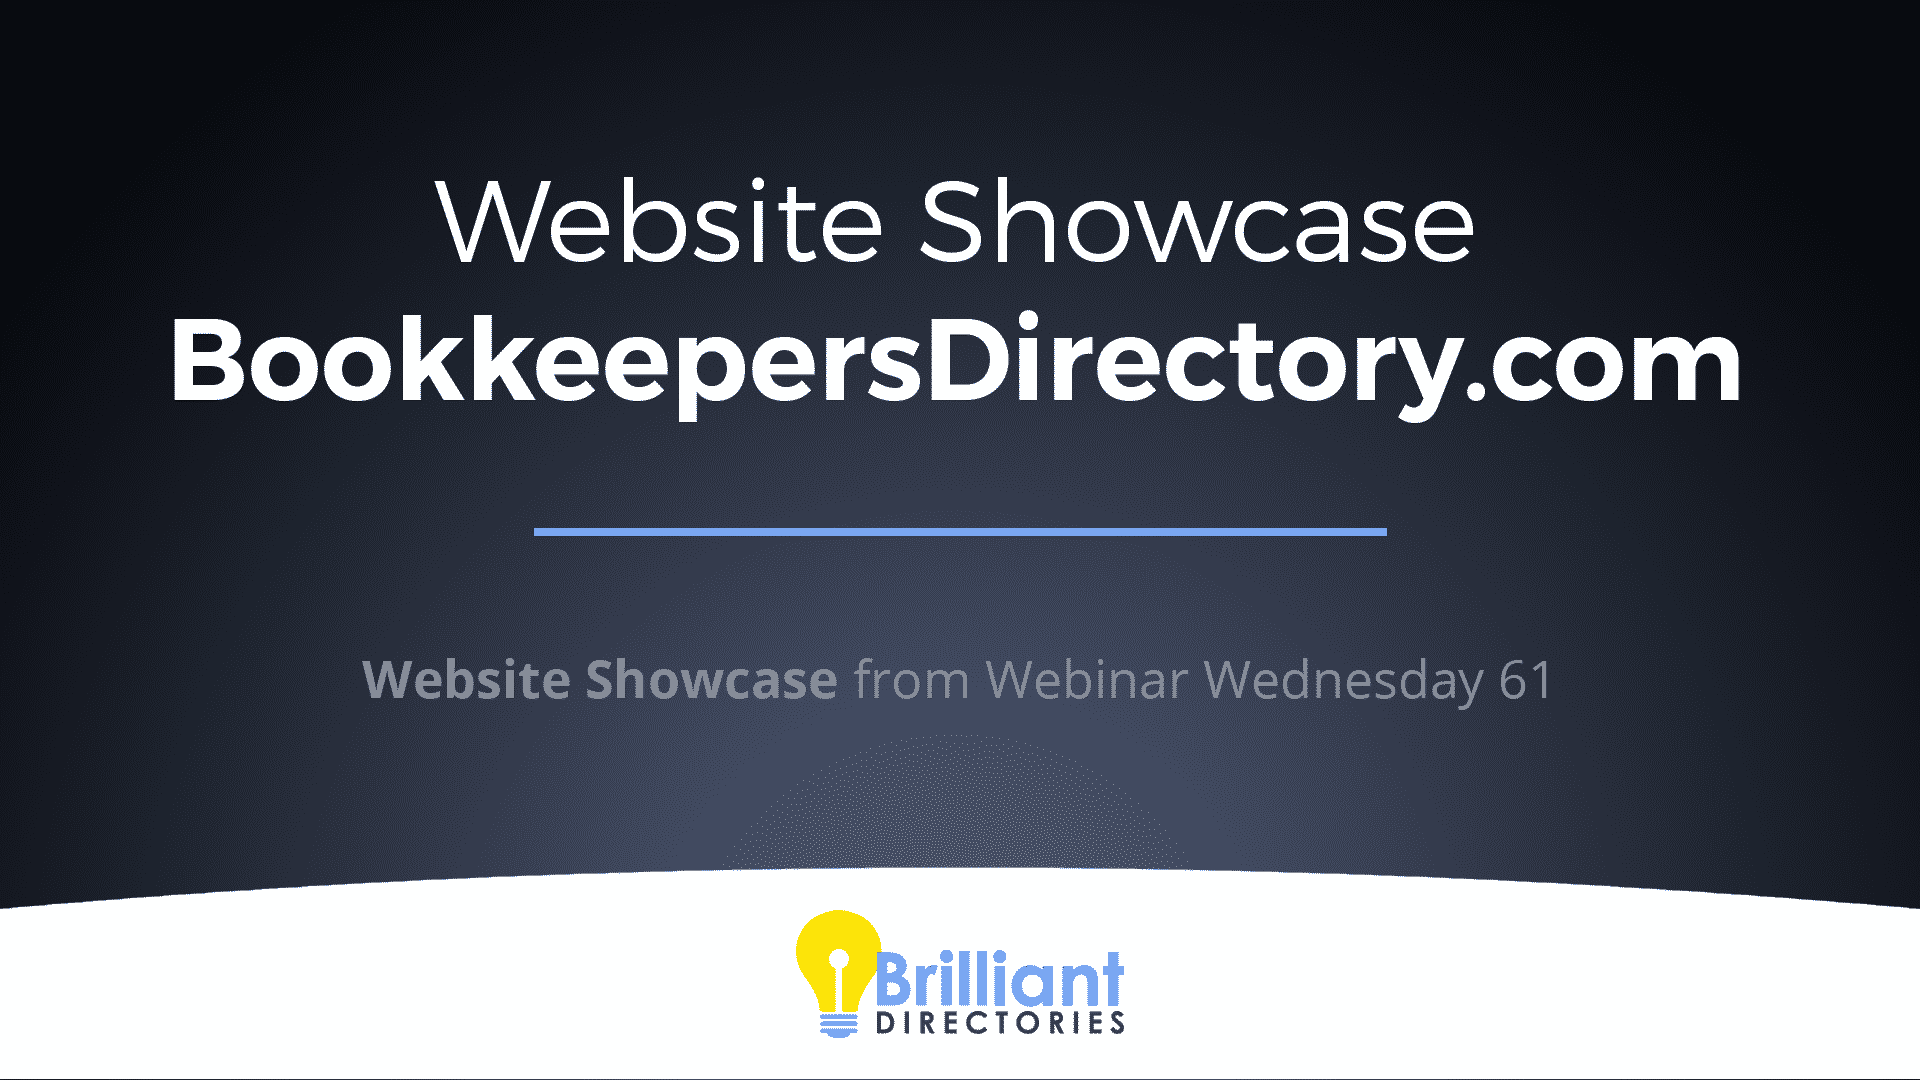 https://www.brilliantdirectories.com/blog/case-study-bookkeepers-directory-powered-by-brilliant-directories